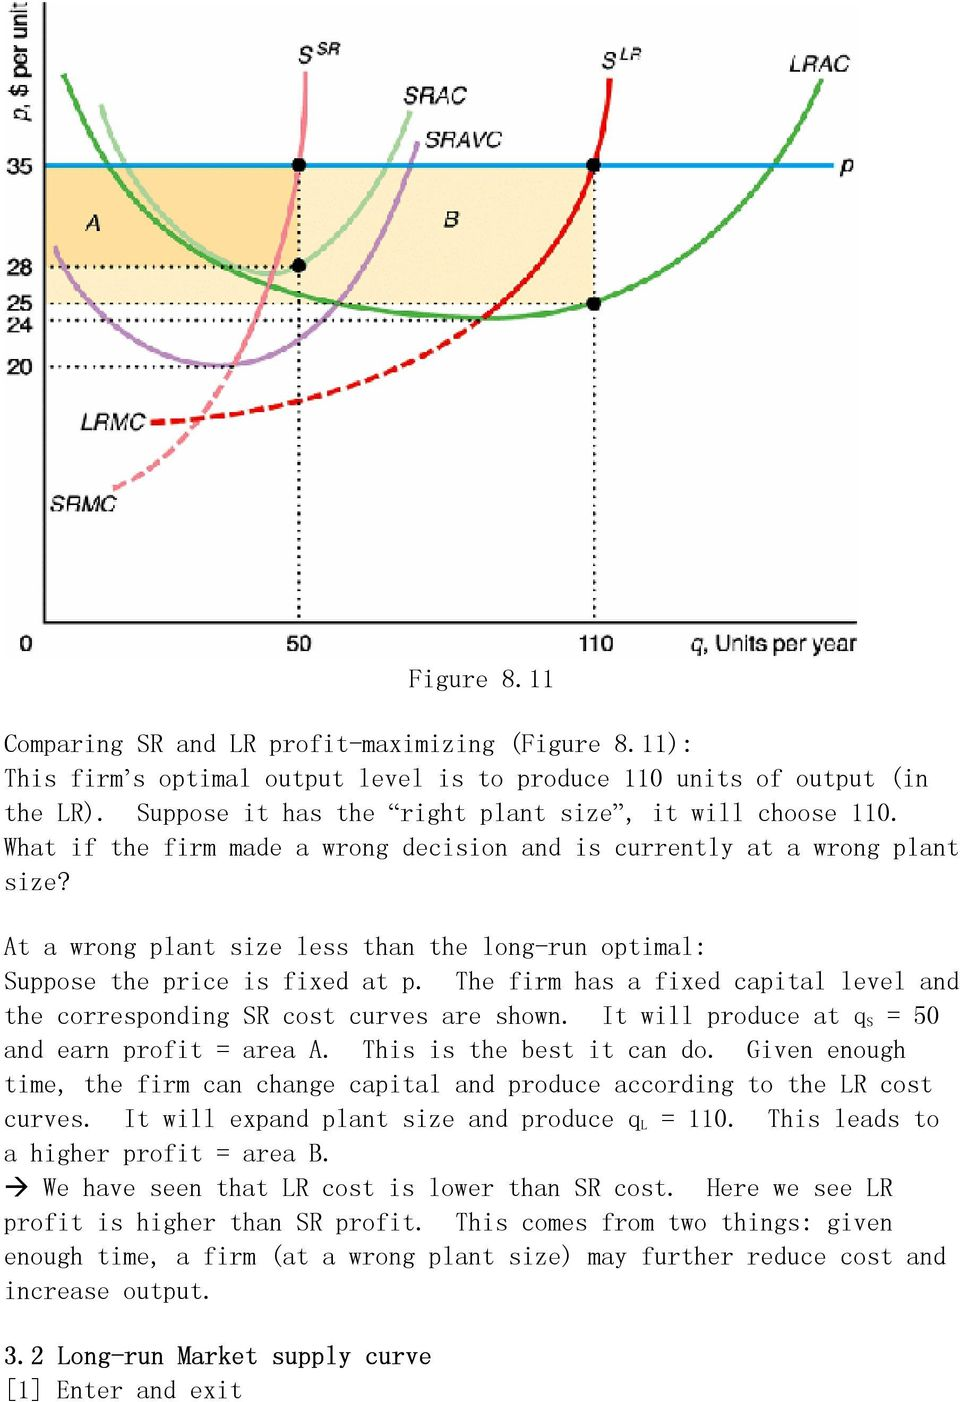 At a wrong plant size less than the long-run optimal: Suppose the price is fixed at p. The firm has a fixed capital level and the corresponding SR cost curves are shown.